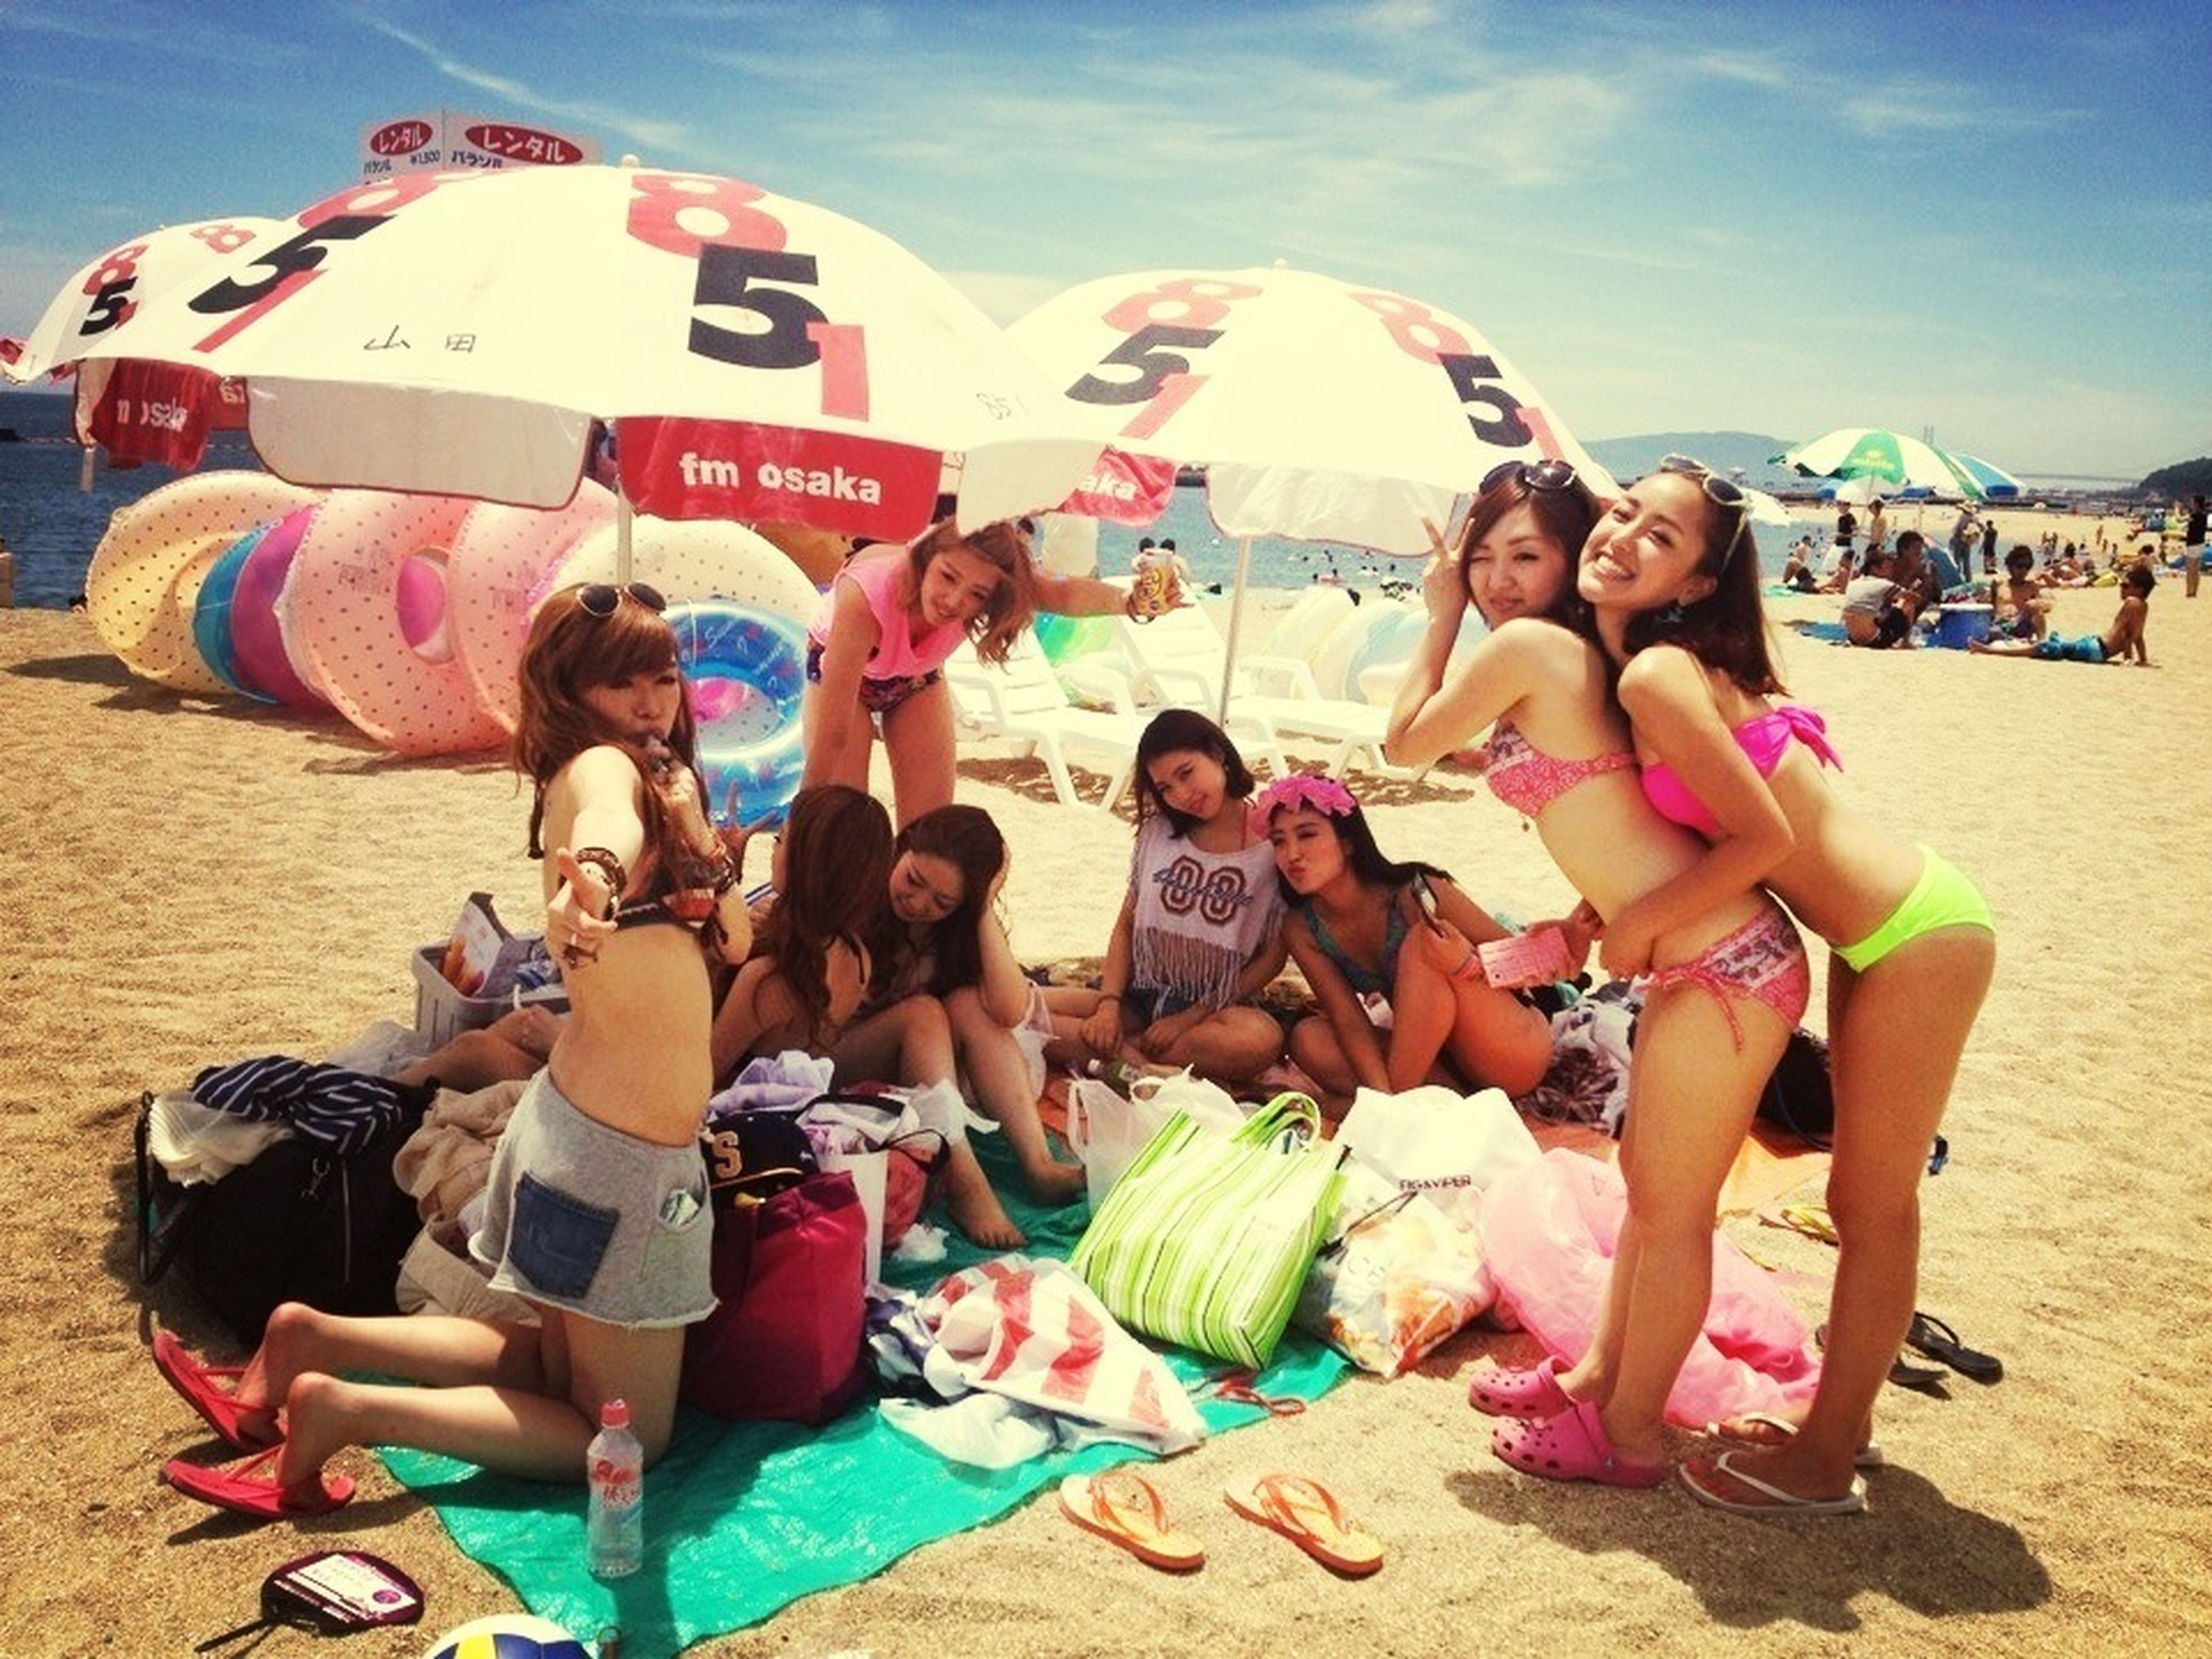 lifestyles, leisure activity, togetherness, casual clothing, fun, enjoyment, sitting, playing, full length, vacations, beach, sky, friendship, love, large group of people, bonding, person, childhood, happiness